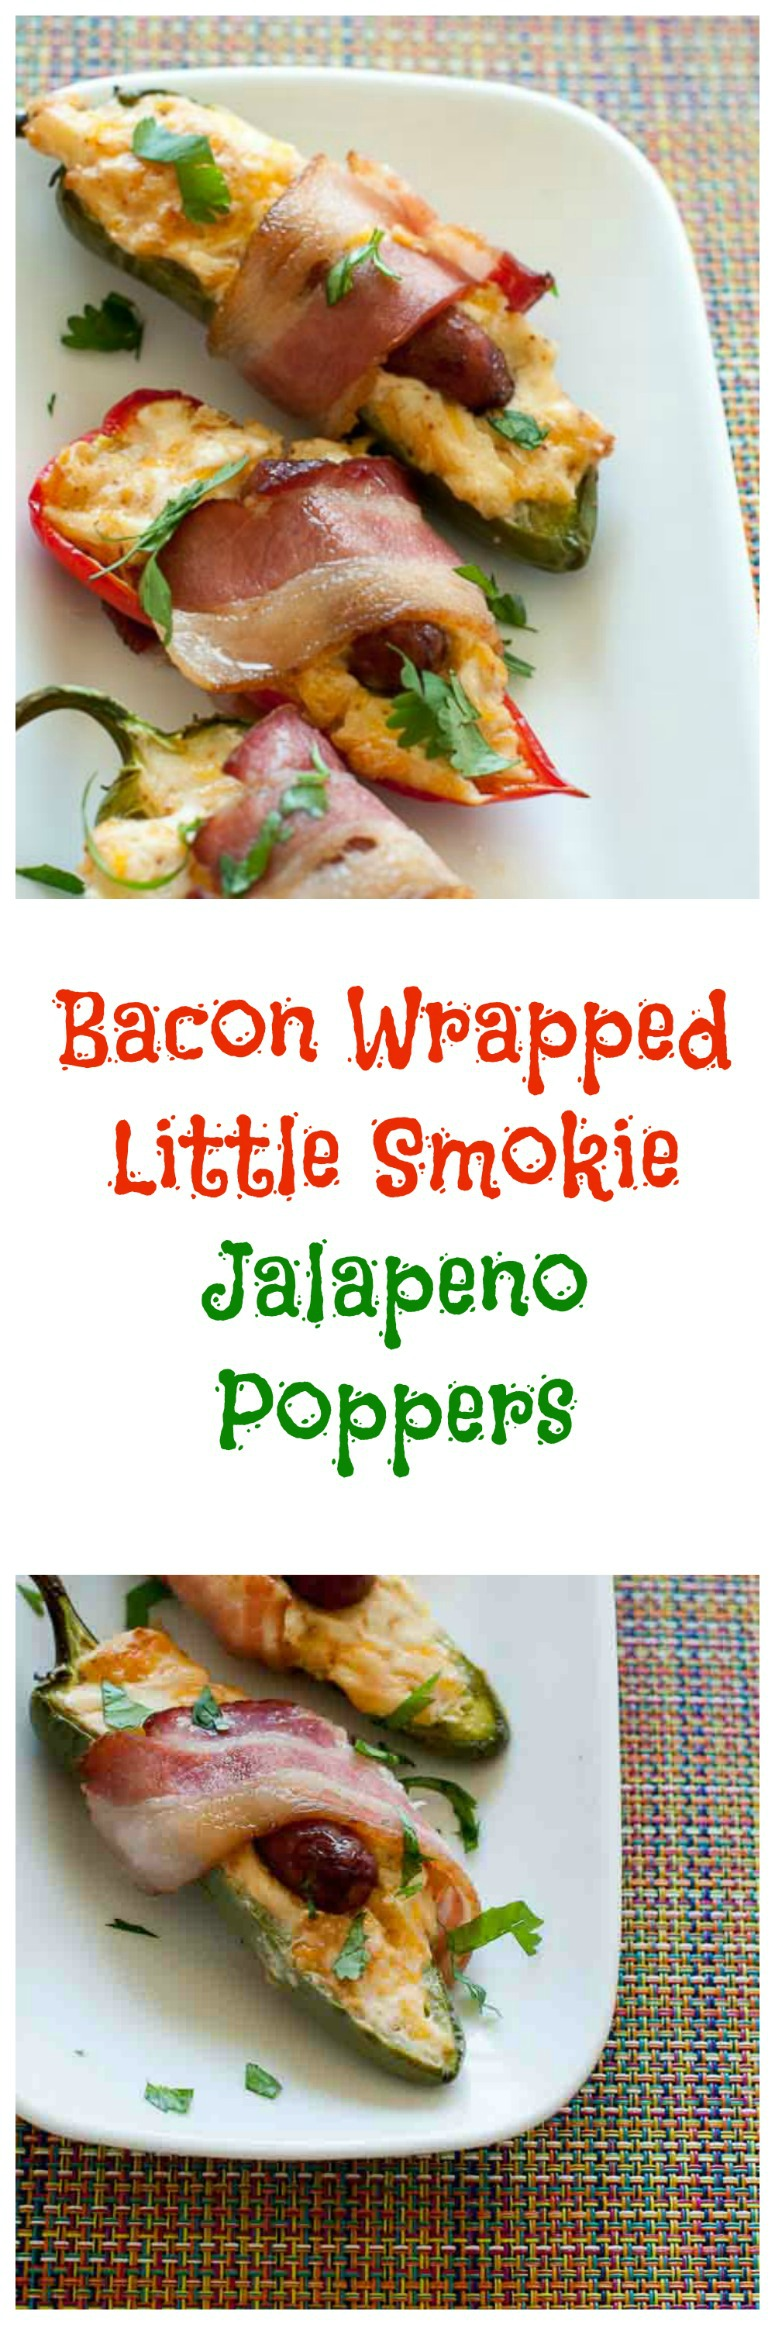 These bacon wrapped little smokie jalapeno poppers are perfect for your next game night, or tailgate event.